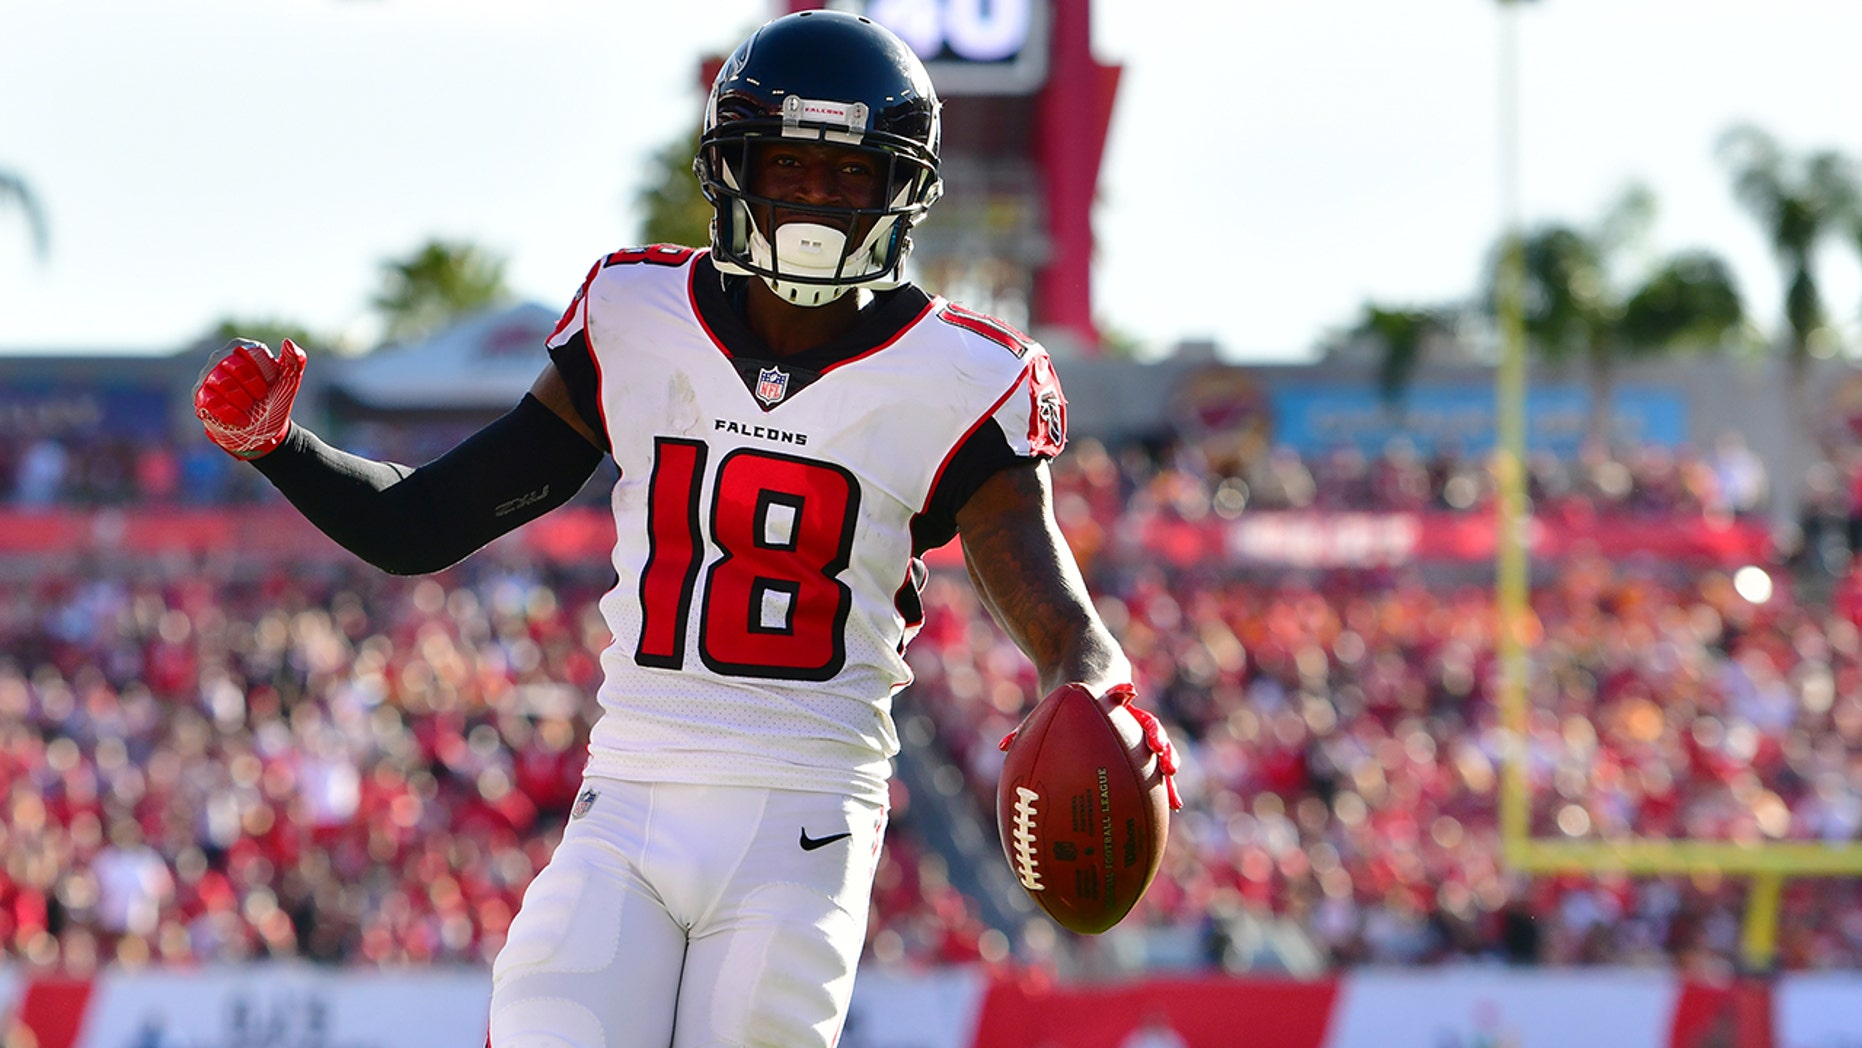 Calvin Ridley #18 of the Atlanta Falcons catches a 7-yard touchdown pass from Matt Ryan #2 during the fourth quarter against the Tampa Bay Buccaneers at Raymond James Stadium on December 30, 2018 in Tampa, Florida.